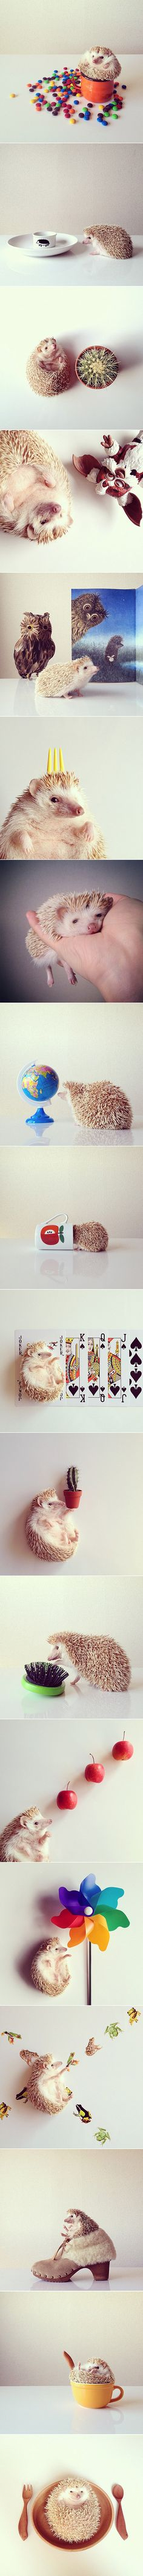 """Tokyo-based Instagrammer Shota Tsukamoto proudly snaps shots of his pet hedgehog named Darcy (best known as @darcytheflyinghedgehog), arguably the cutest little hedgehog in the whole world! The spiky little girl is the epitome of """"aww-worthy"""" as she comfortably sits in a shoe, lounges on a deck of cards, curiously investigates a prickly brush her size, and takes a nap in the palm of her owner's hand."""